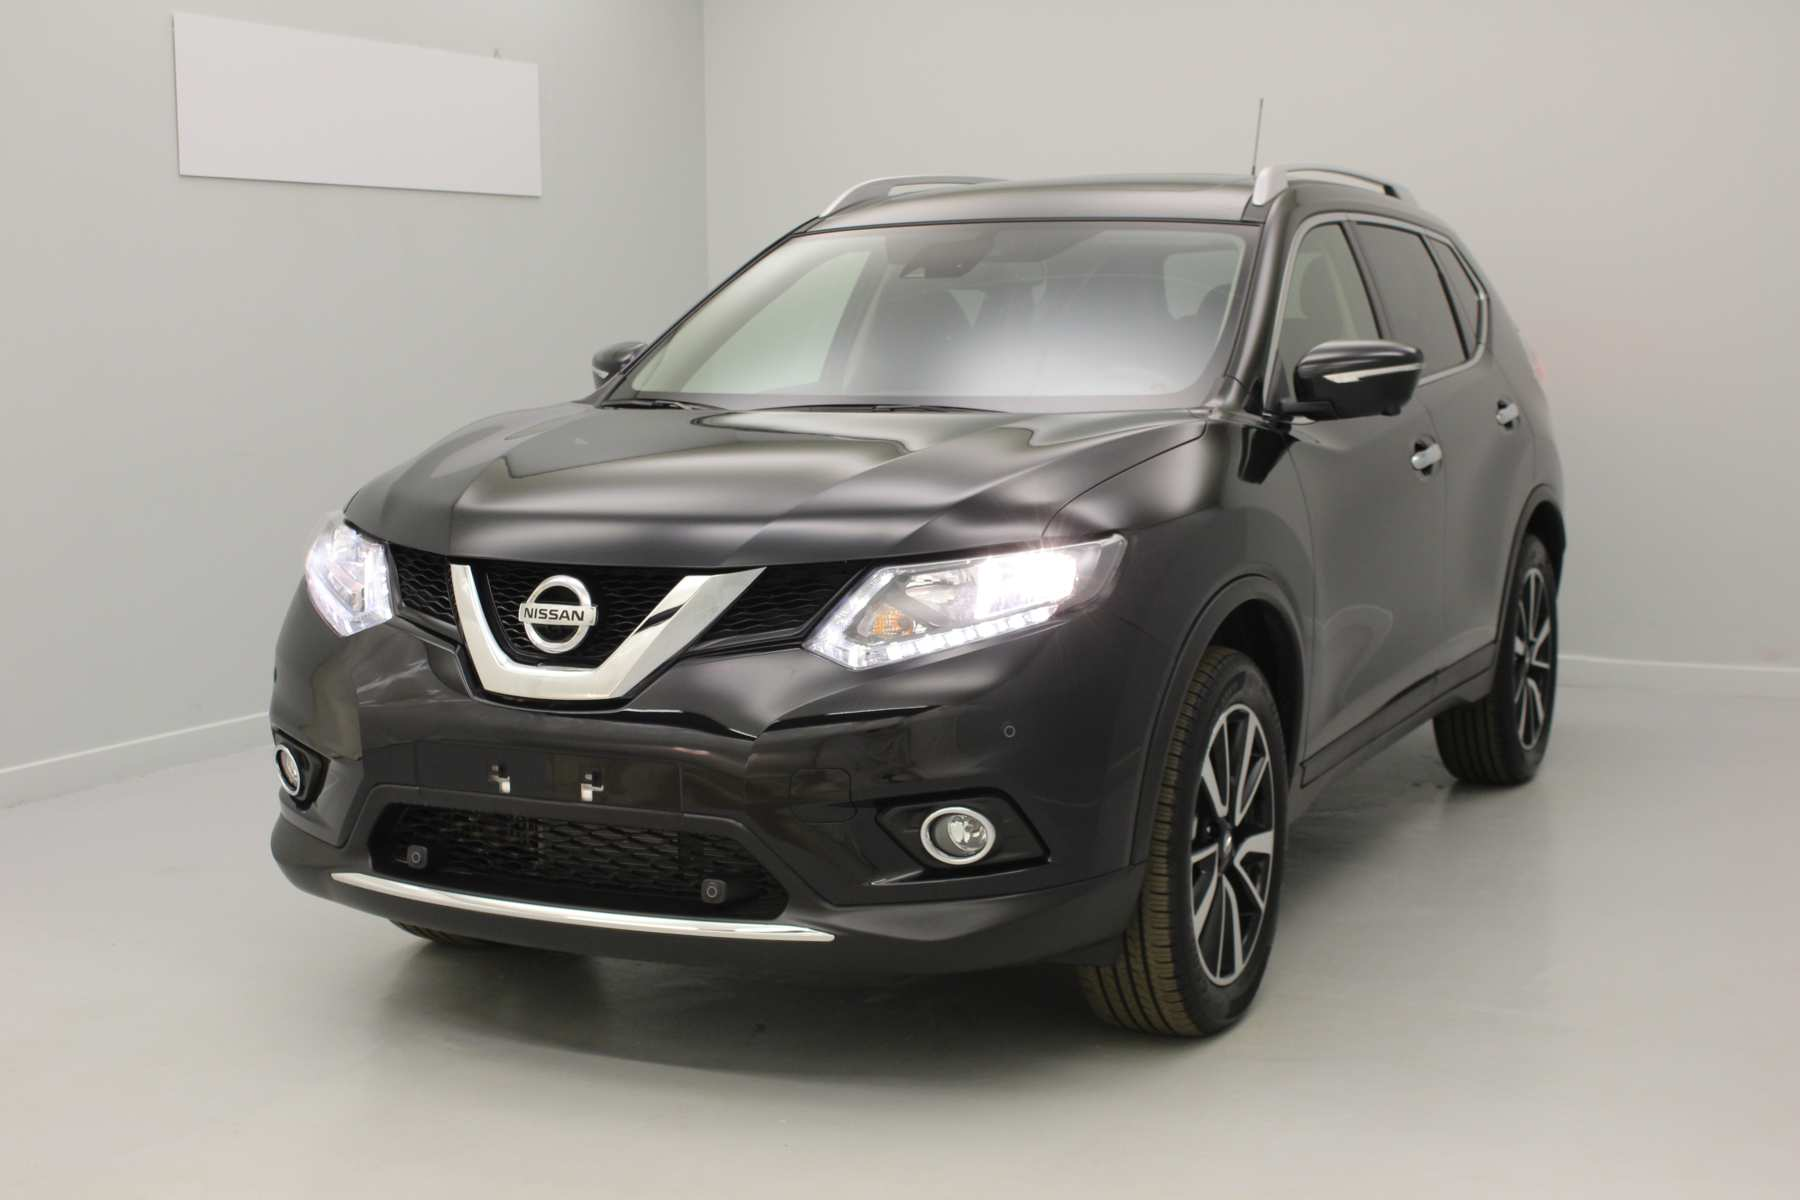 NISSAN X-Trail 1.6 dCi 130 Euro 6 7pl N-Connecta Xtronic A Noir Intense avec options